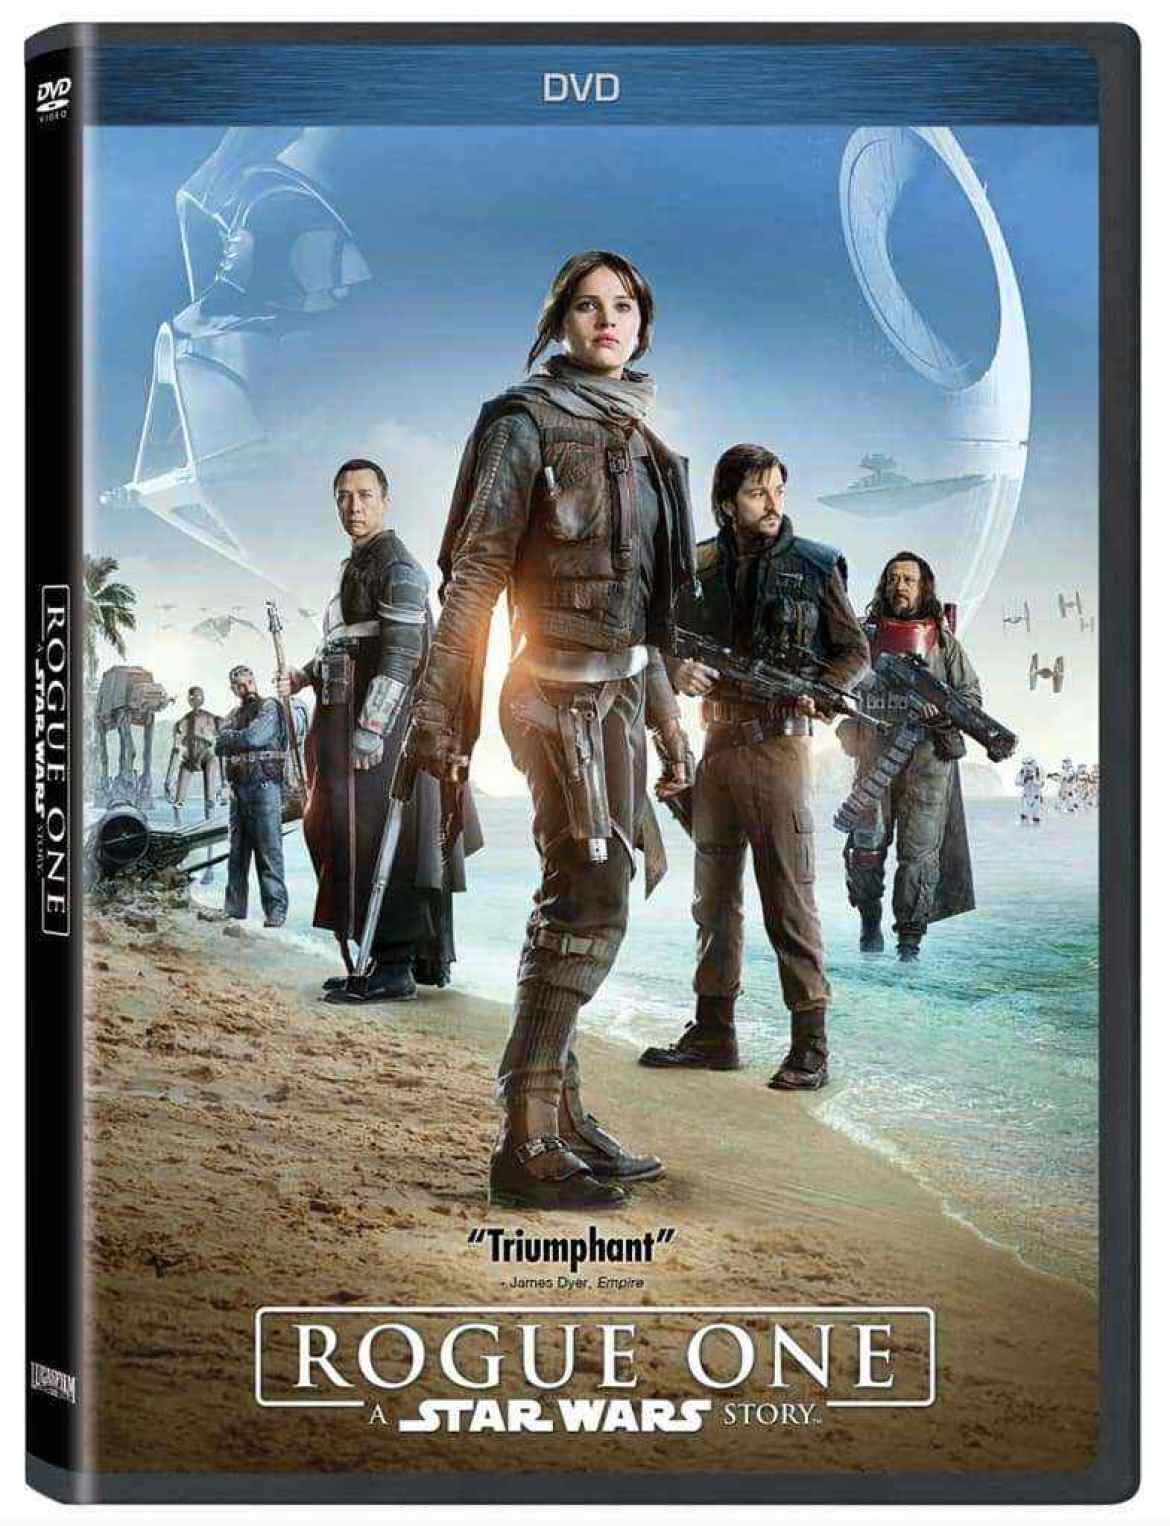 IMG 6820 - Rogue One: A Star Wars Story Blu-Ray exclusives and release date!